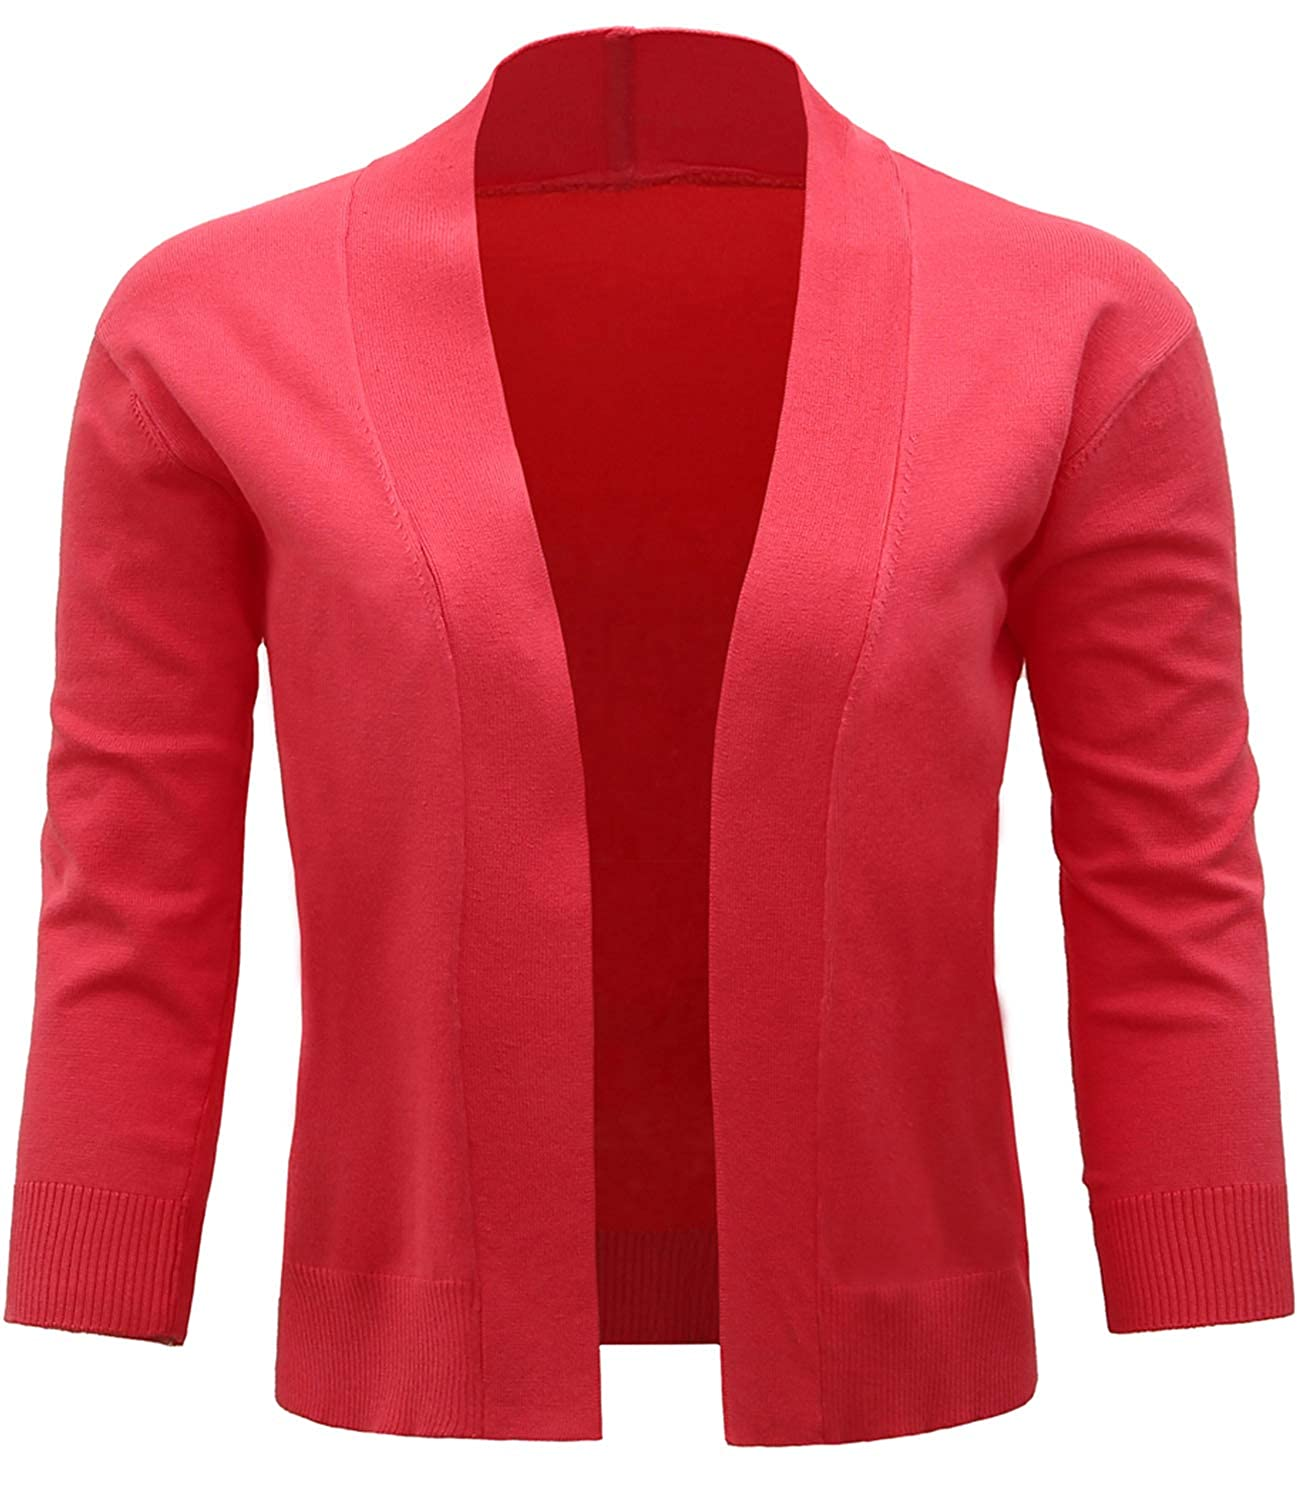 Red JOKHOO Women Classic 3 4 Sleeve Open Front Crop Cardigan